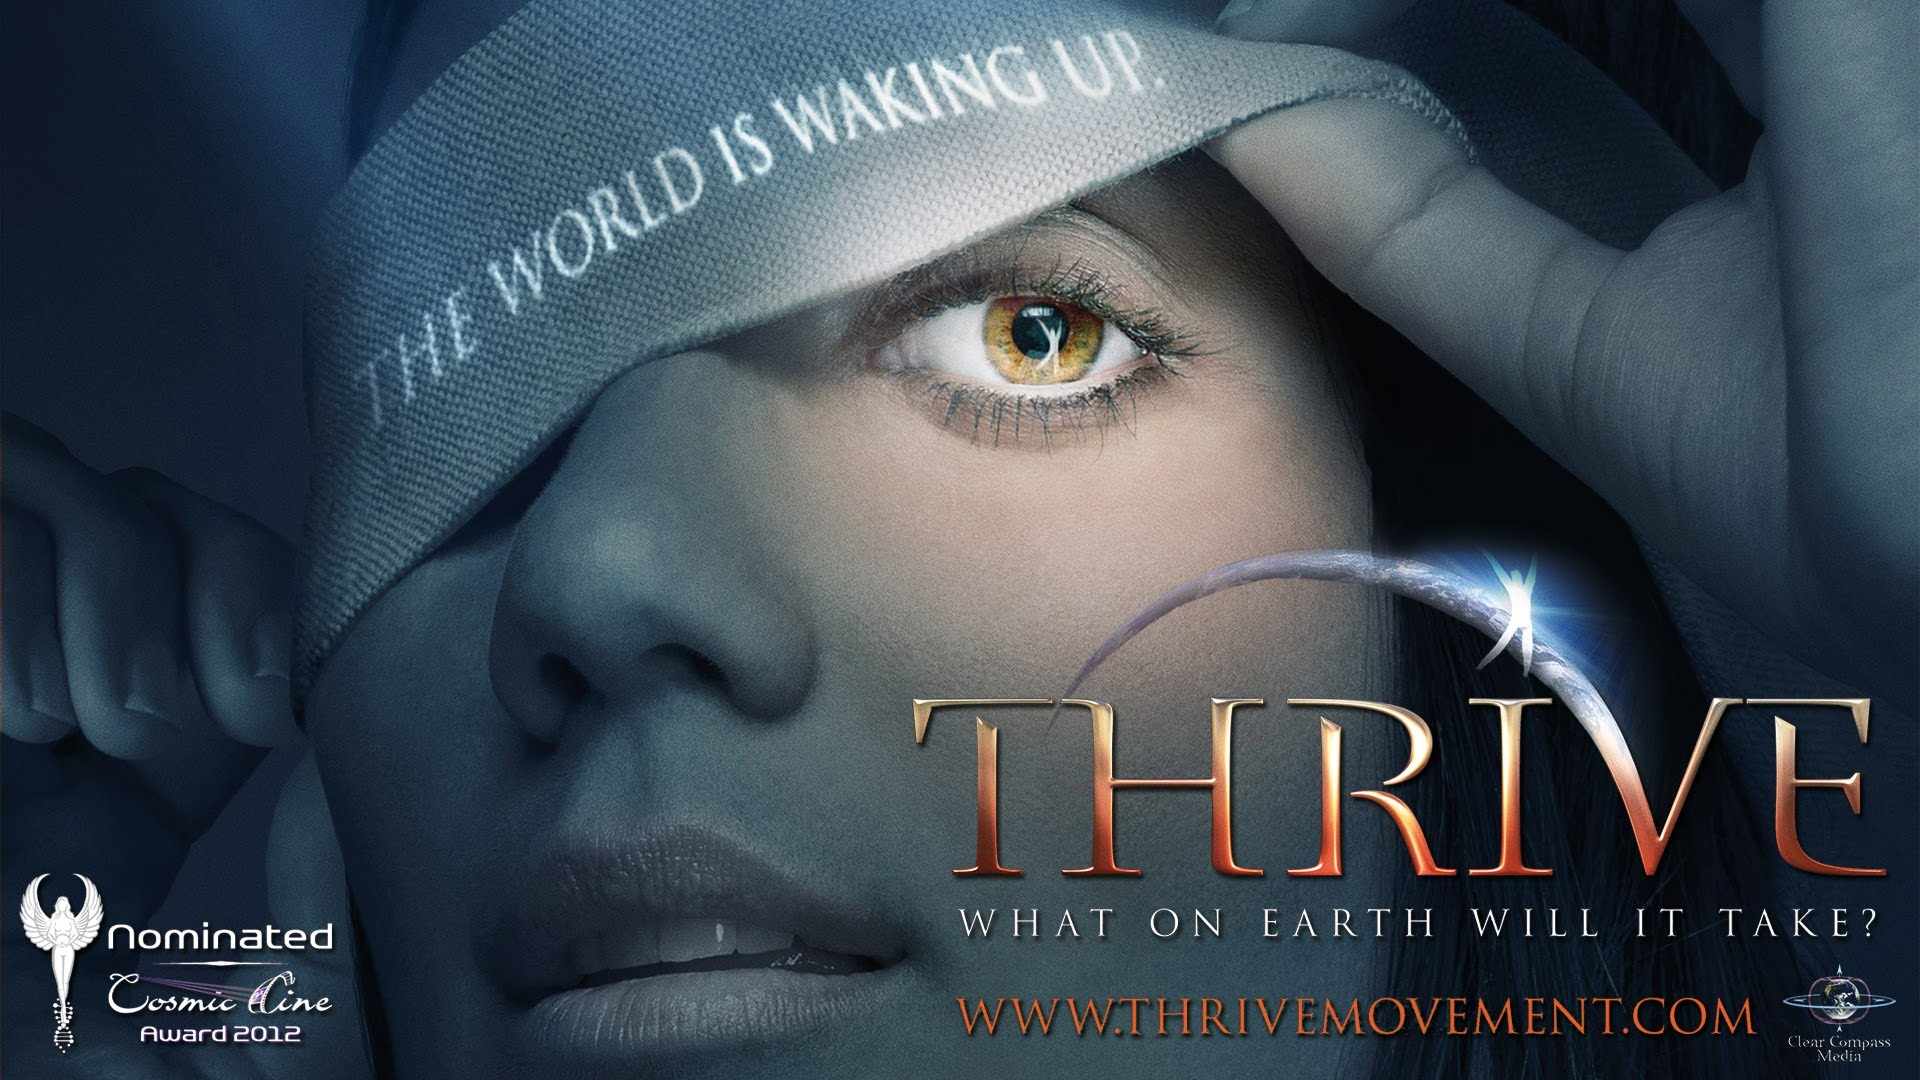 The Thrive (what on Earth will it take ?